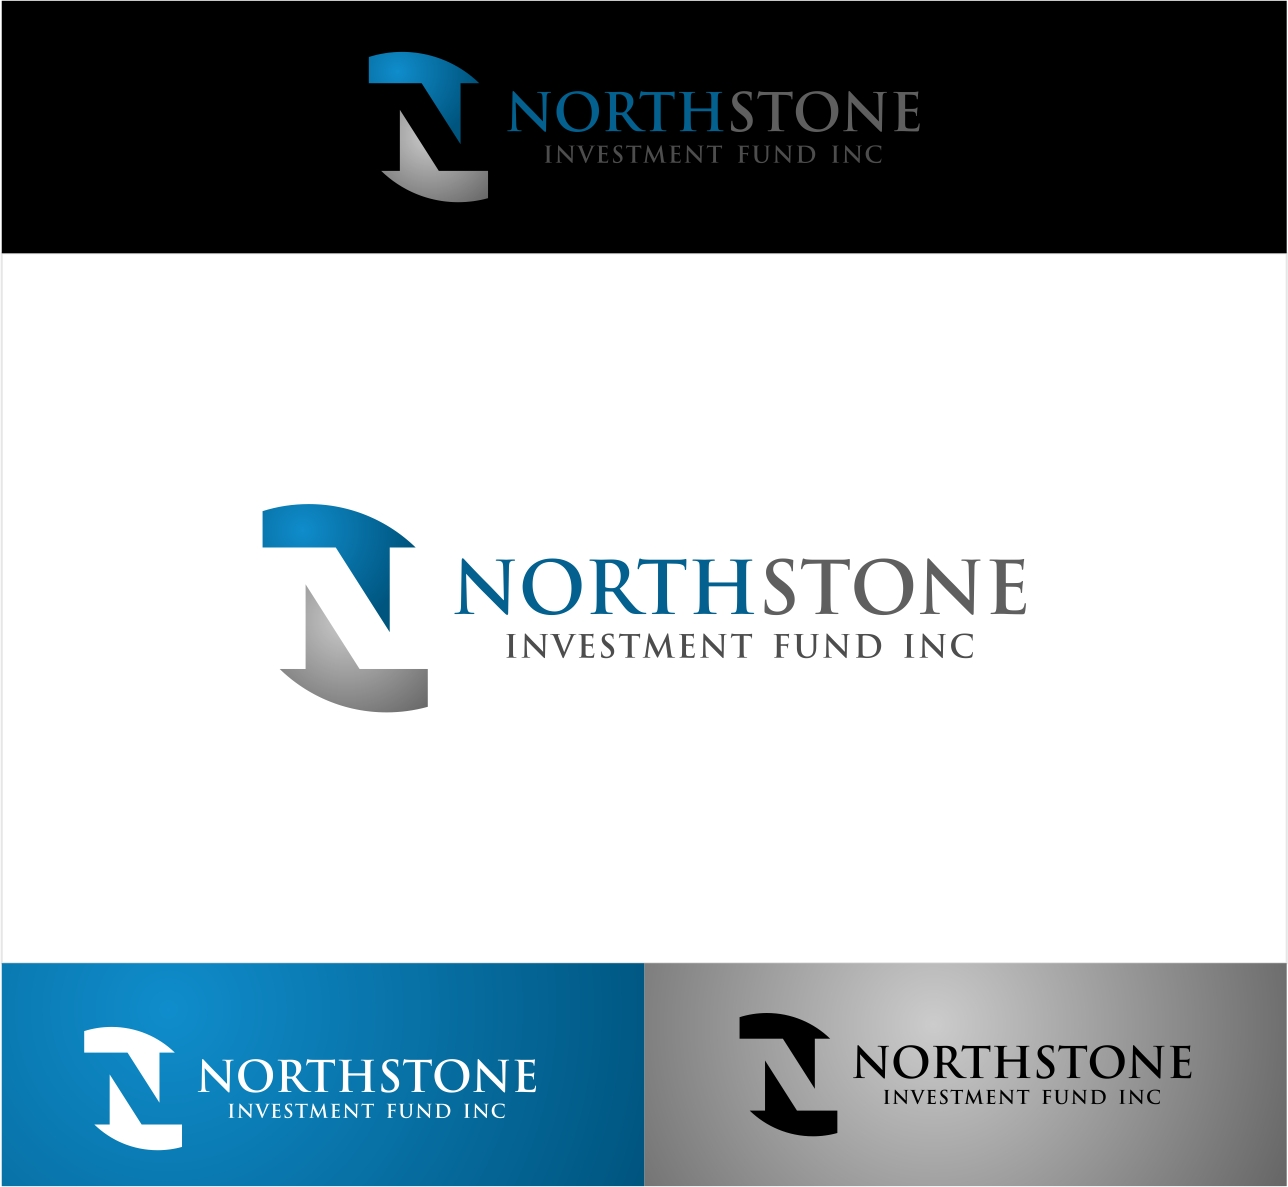 Logo Design by haidu - Entry No. 233 in the Logo Design Contest Unique Logo Design Wanted for NorthStone Investment Fund Inc.